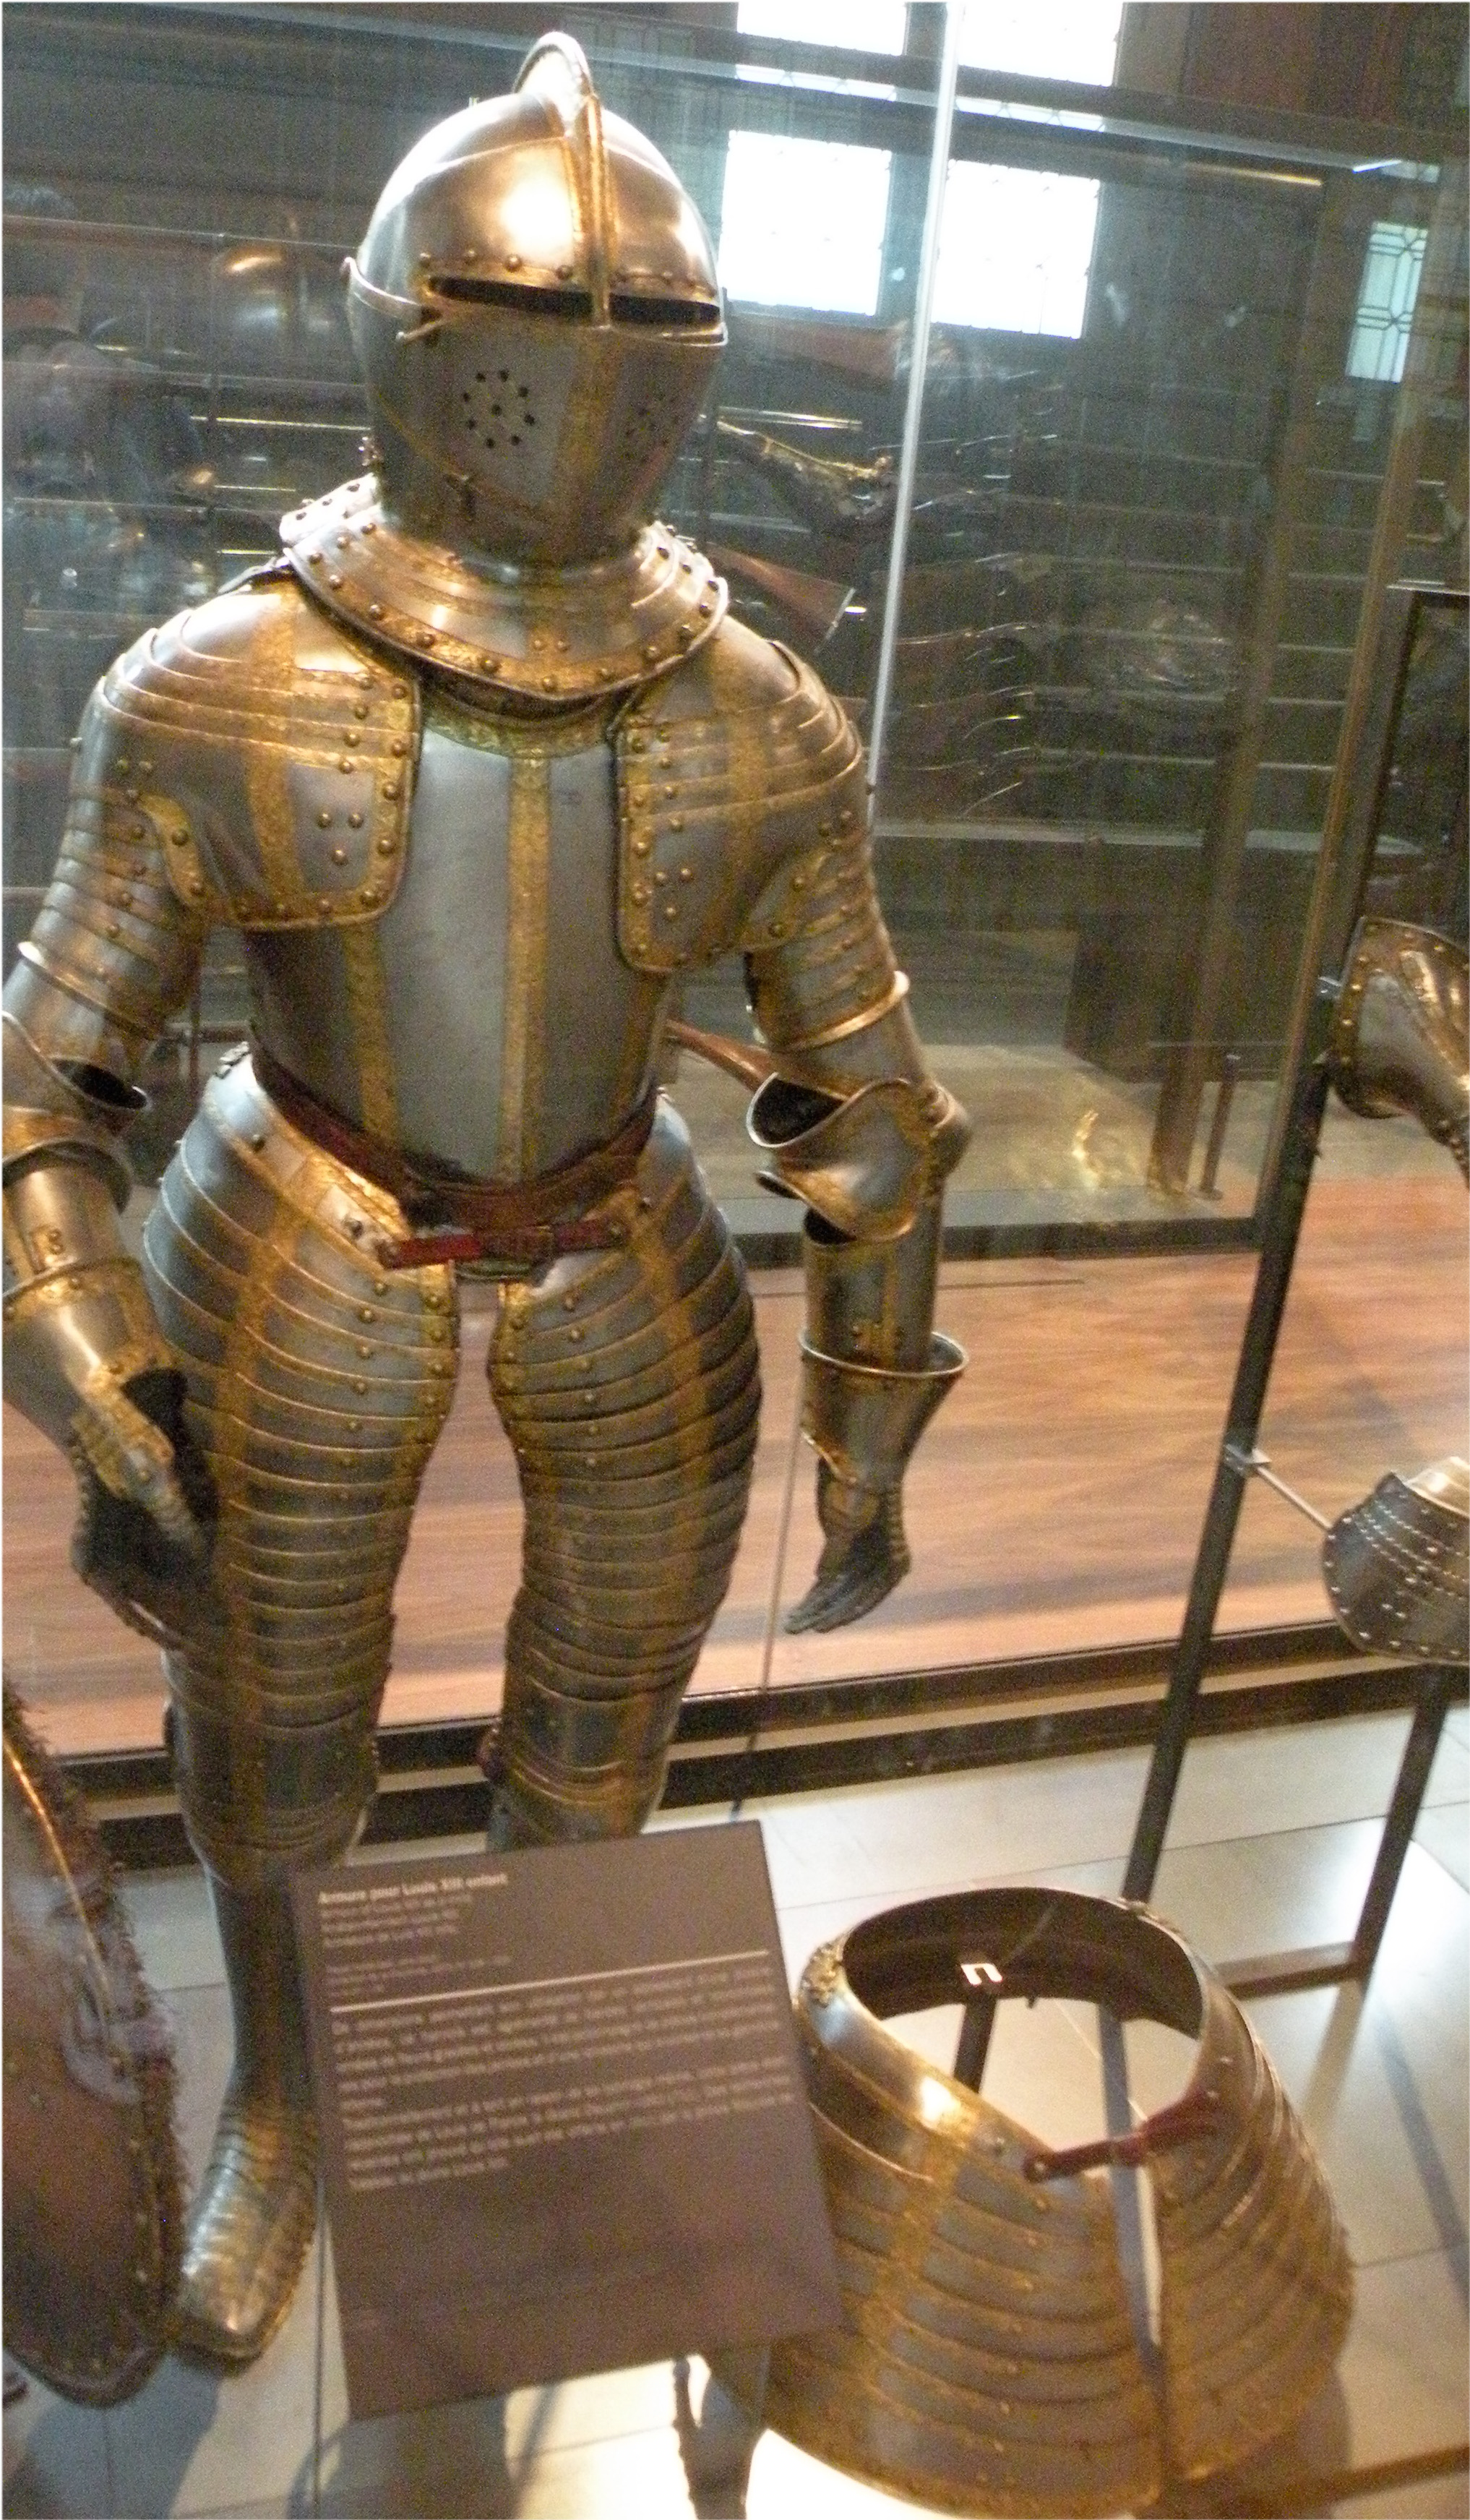 armour of king louis xiv of france youth pics4learning